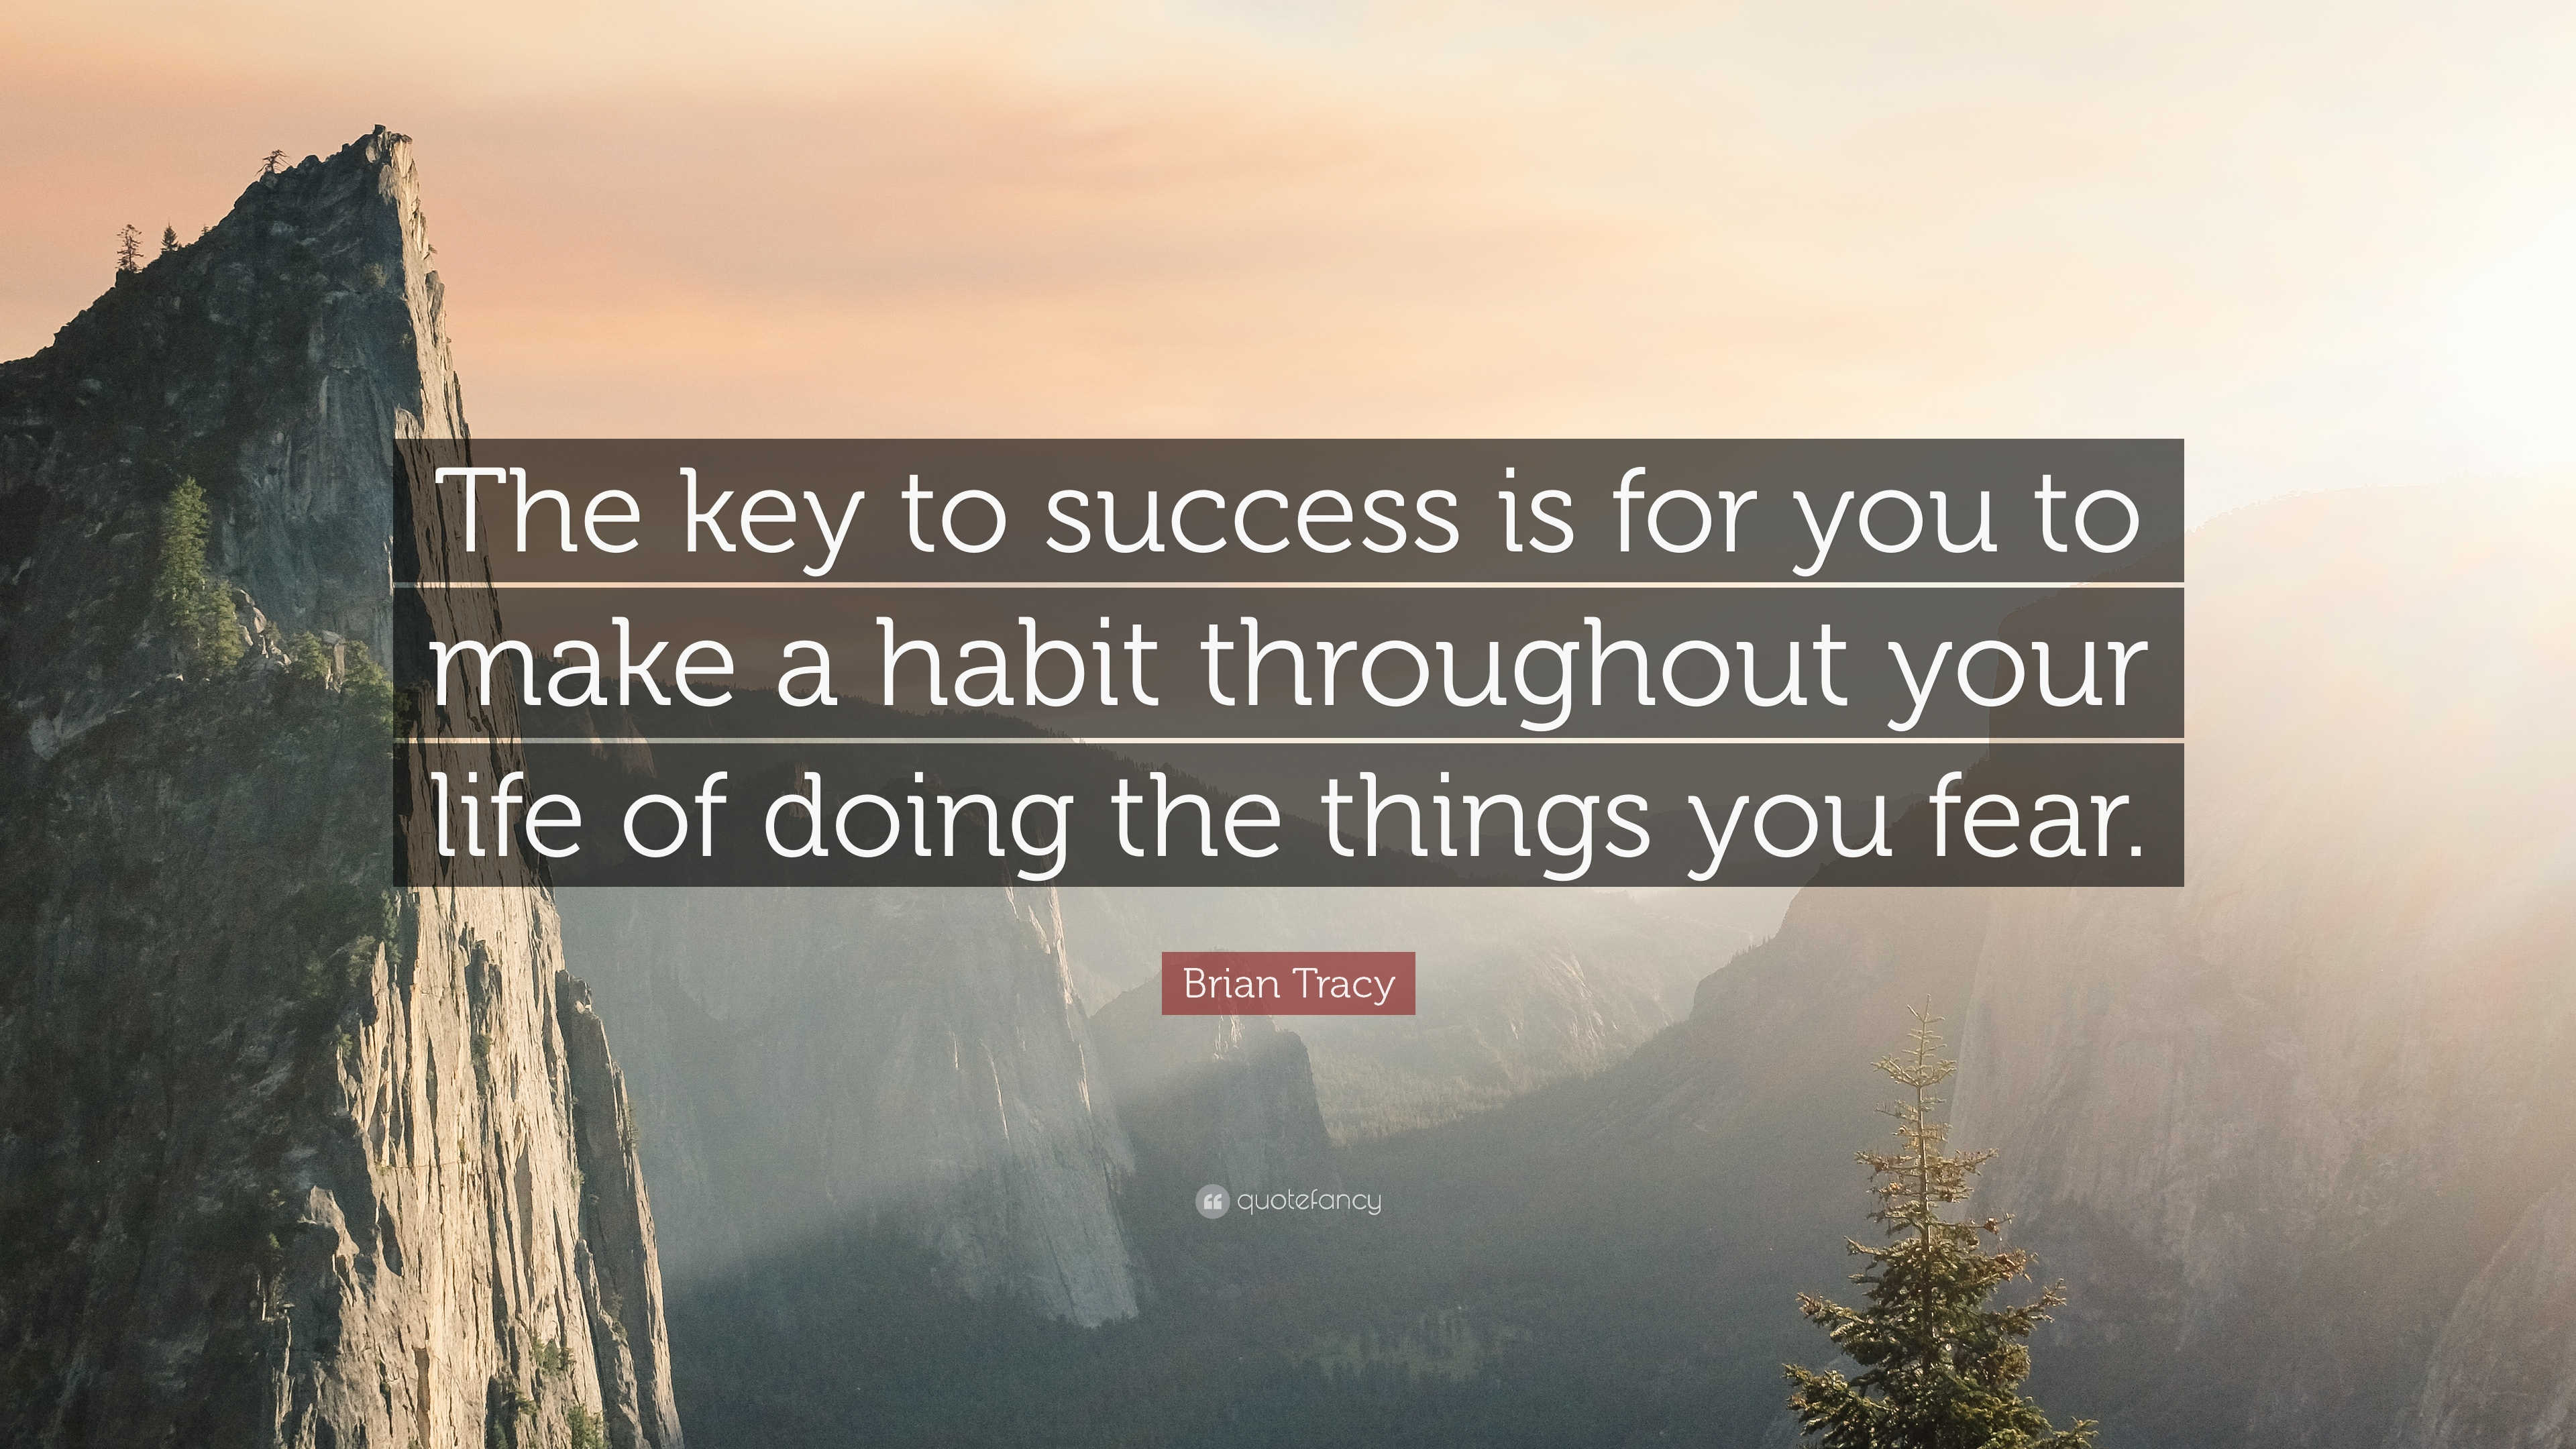 know success key don quote habit going hand walk road hold better fear alfred throughout doing musset tracy brian things